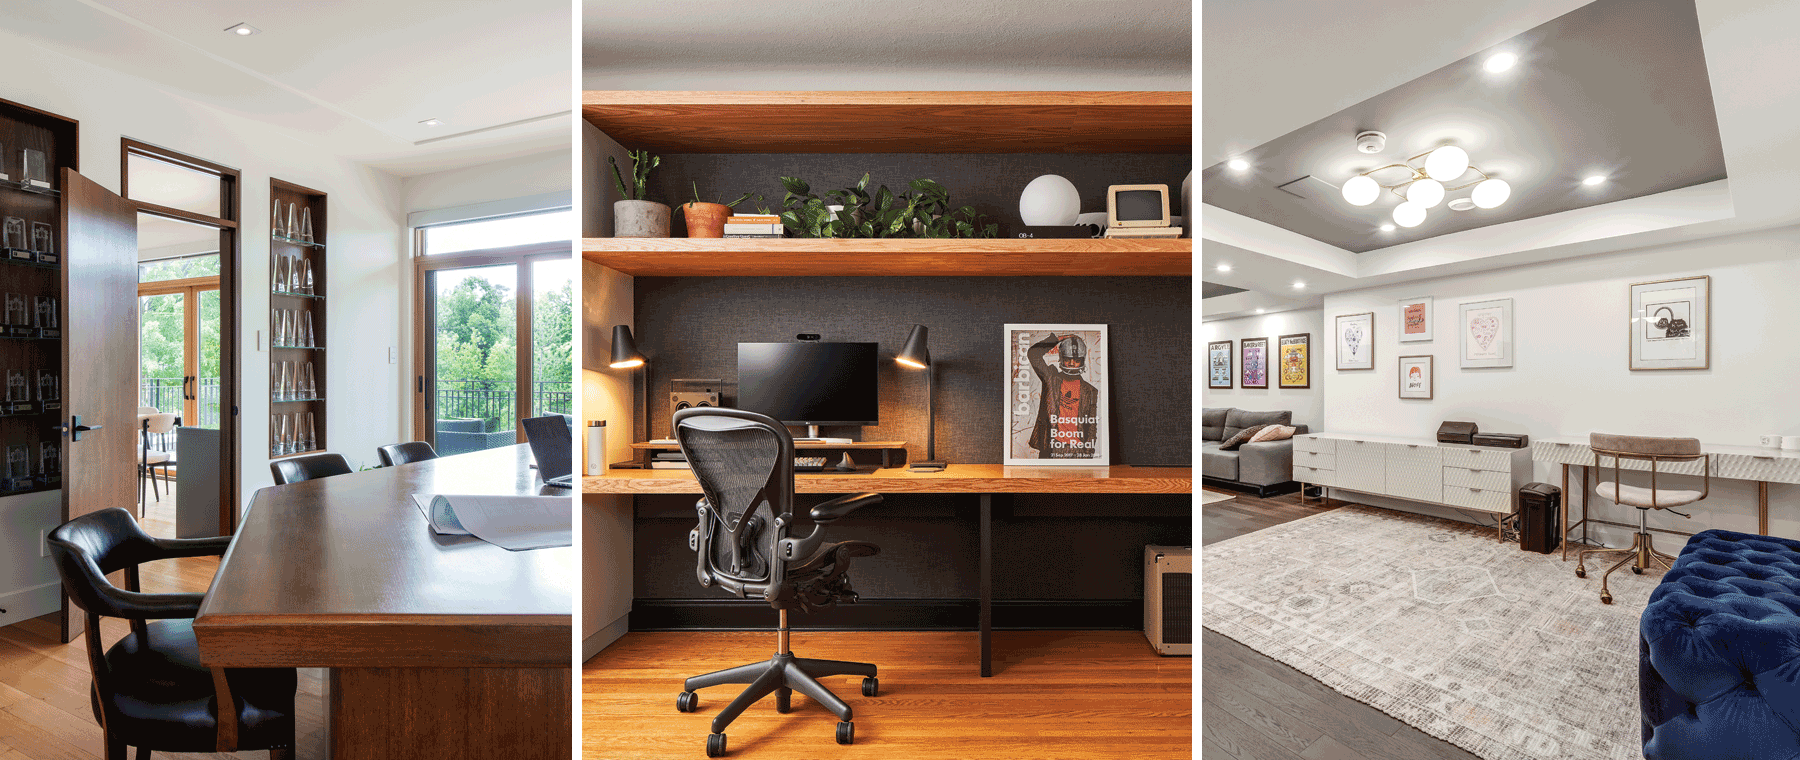 Rethinking the Home Office: Inside 3 Great Spaces